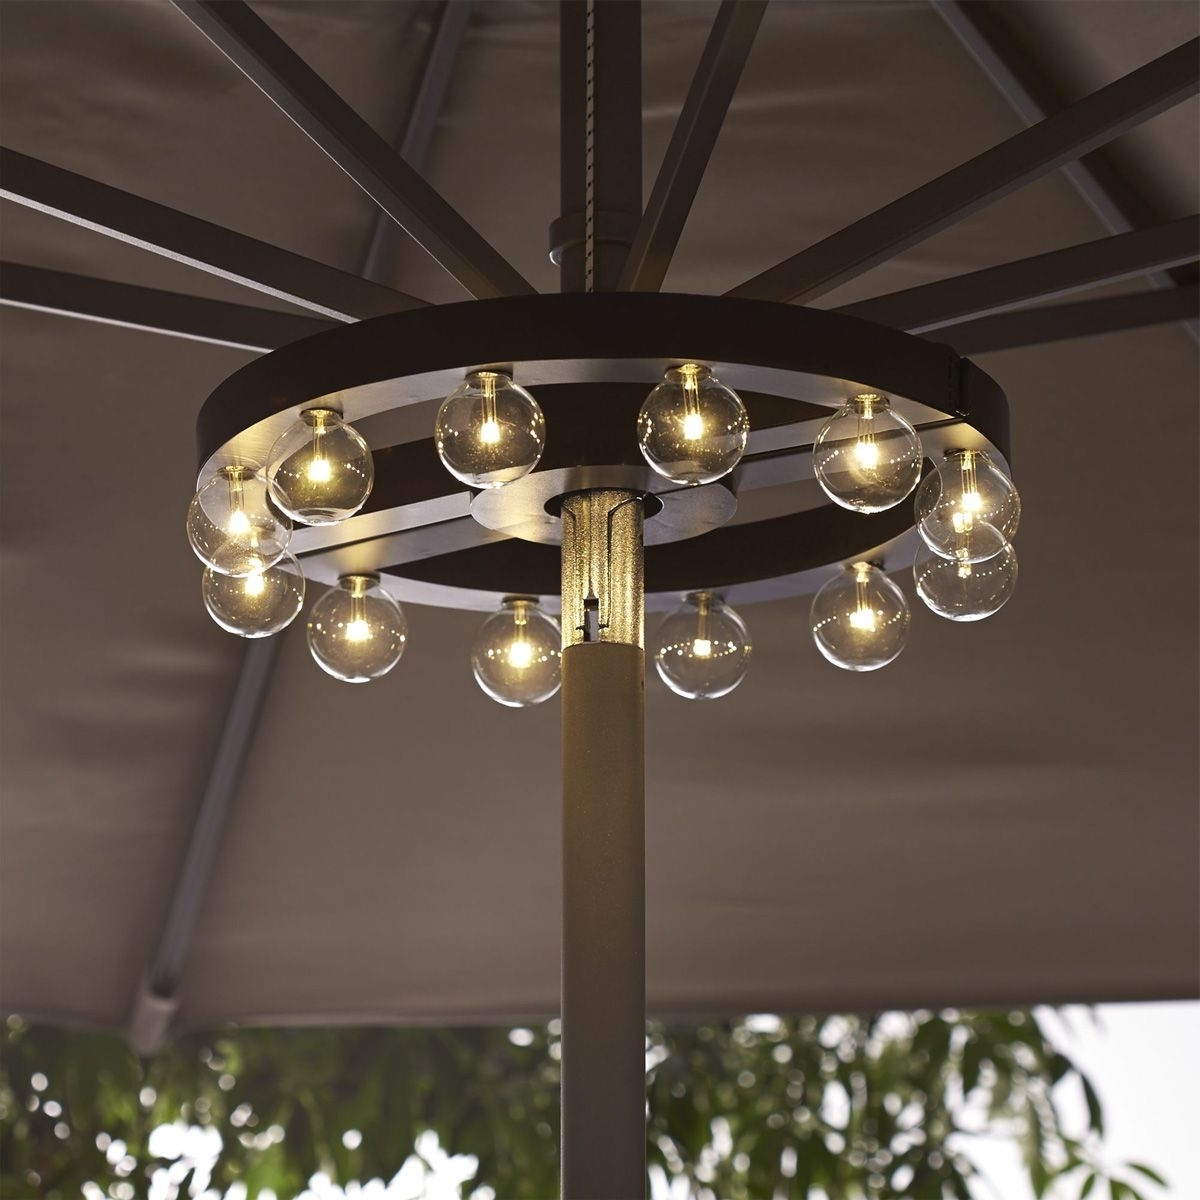 Patio Umbrellas With Solar Lights Inside Well Liked Solar Lights For Patio Umbrellas • Patio Ideas (View 12 of 20)